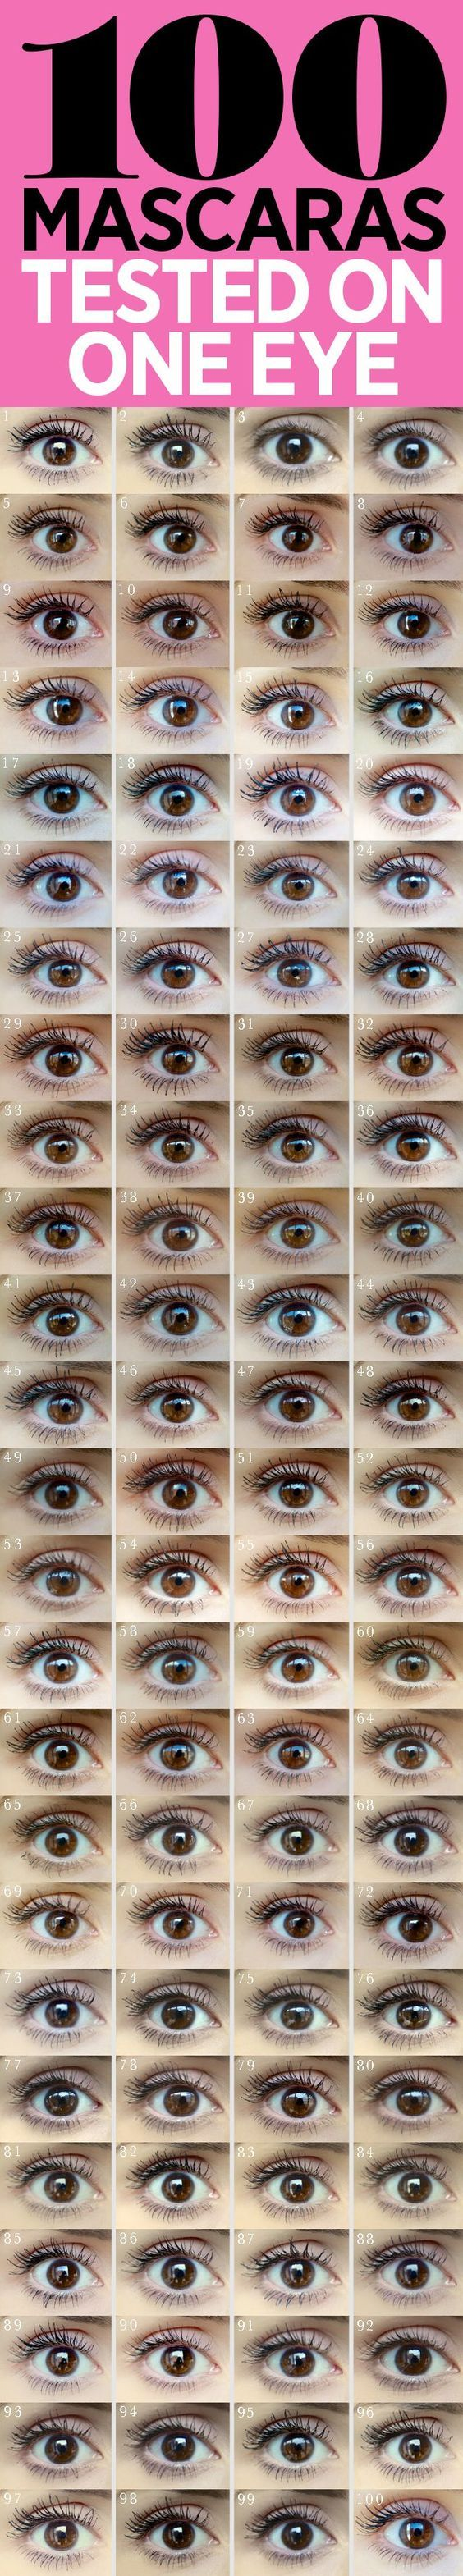 100 Mascaras Tested On ONE Eye: Picture Reviews - By Bridget March From Cosmopolitan   Glamour Shots